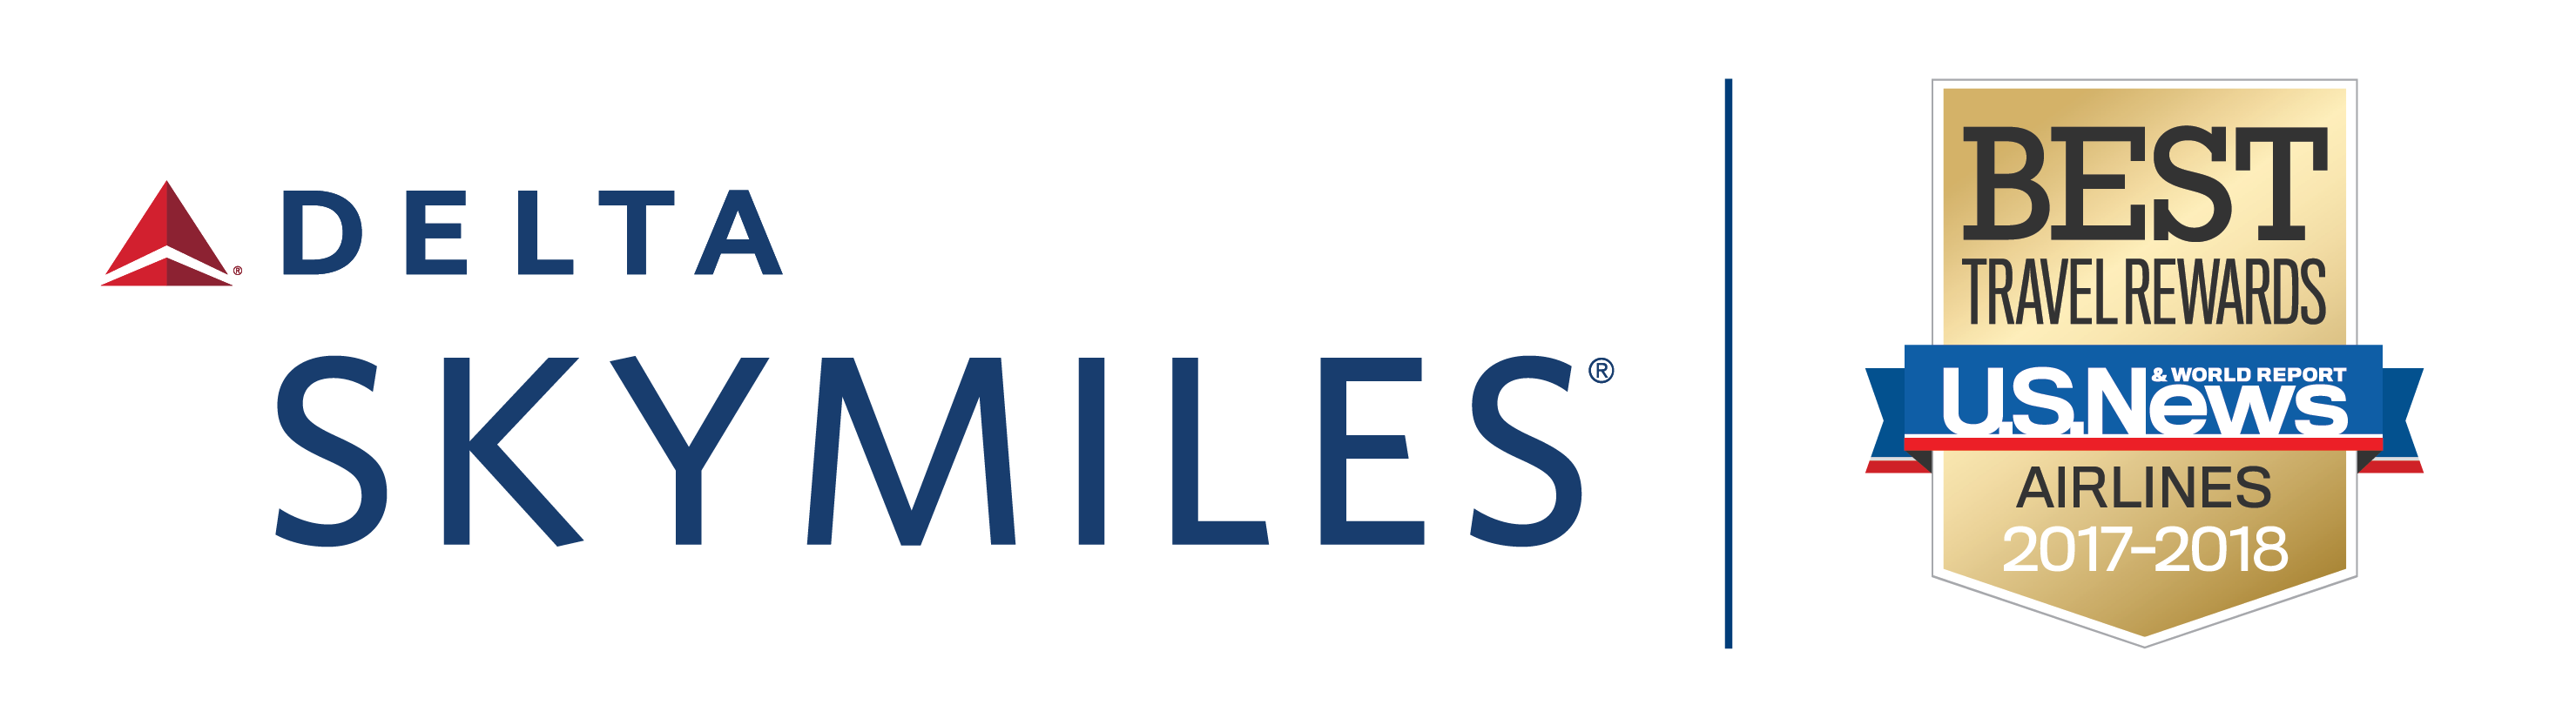 How to Earn Skymiles Quickly